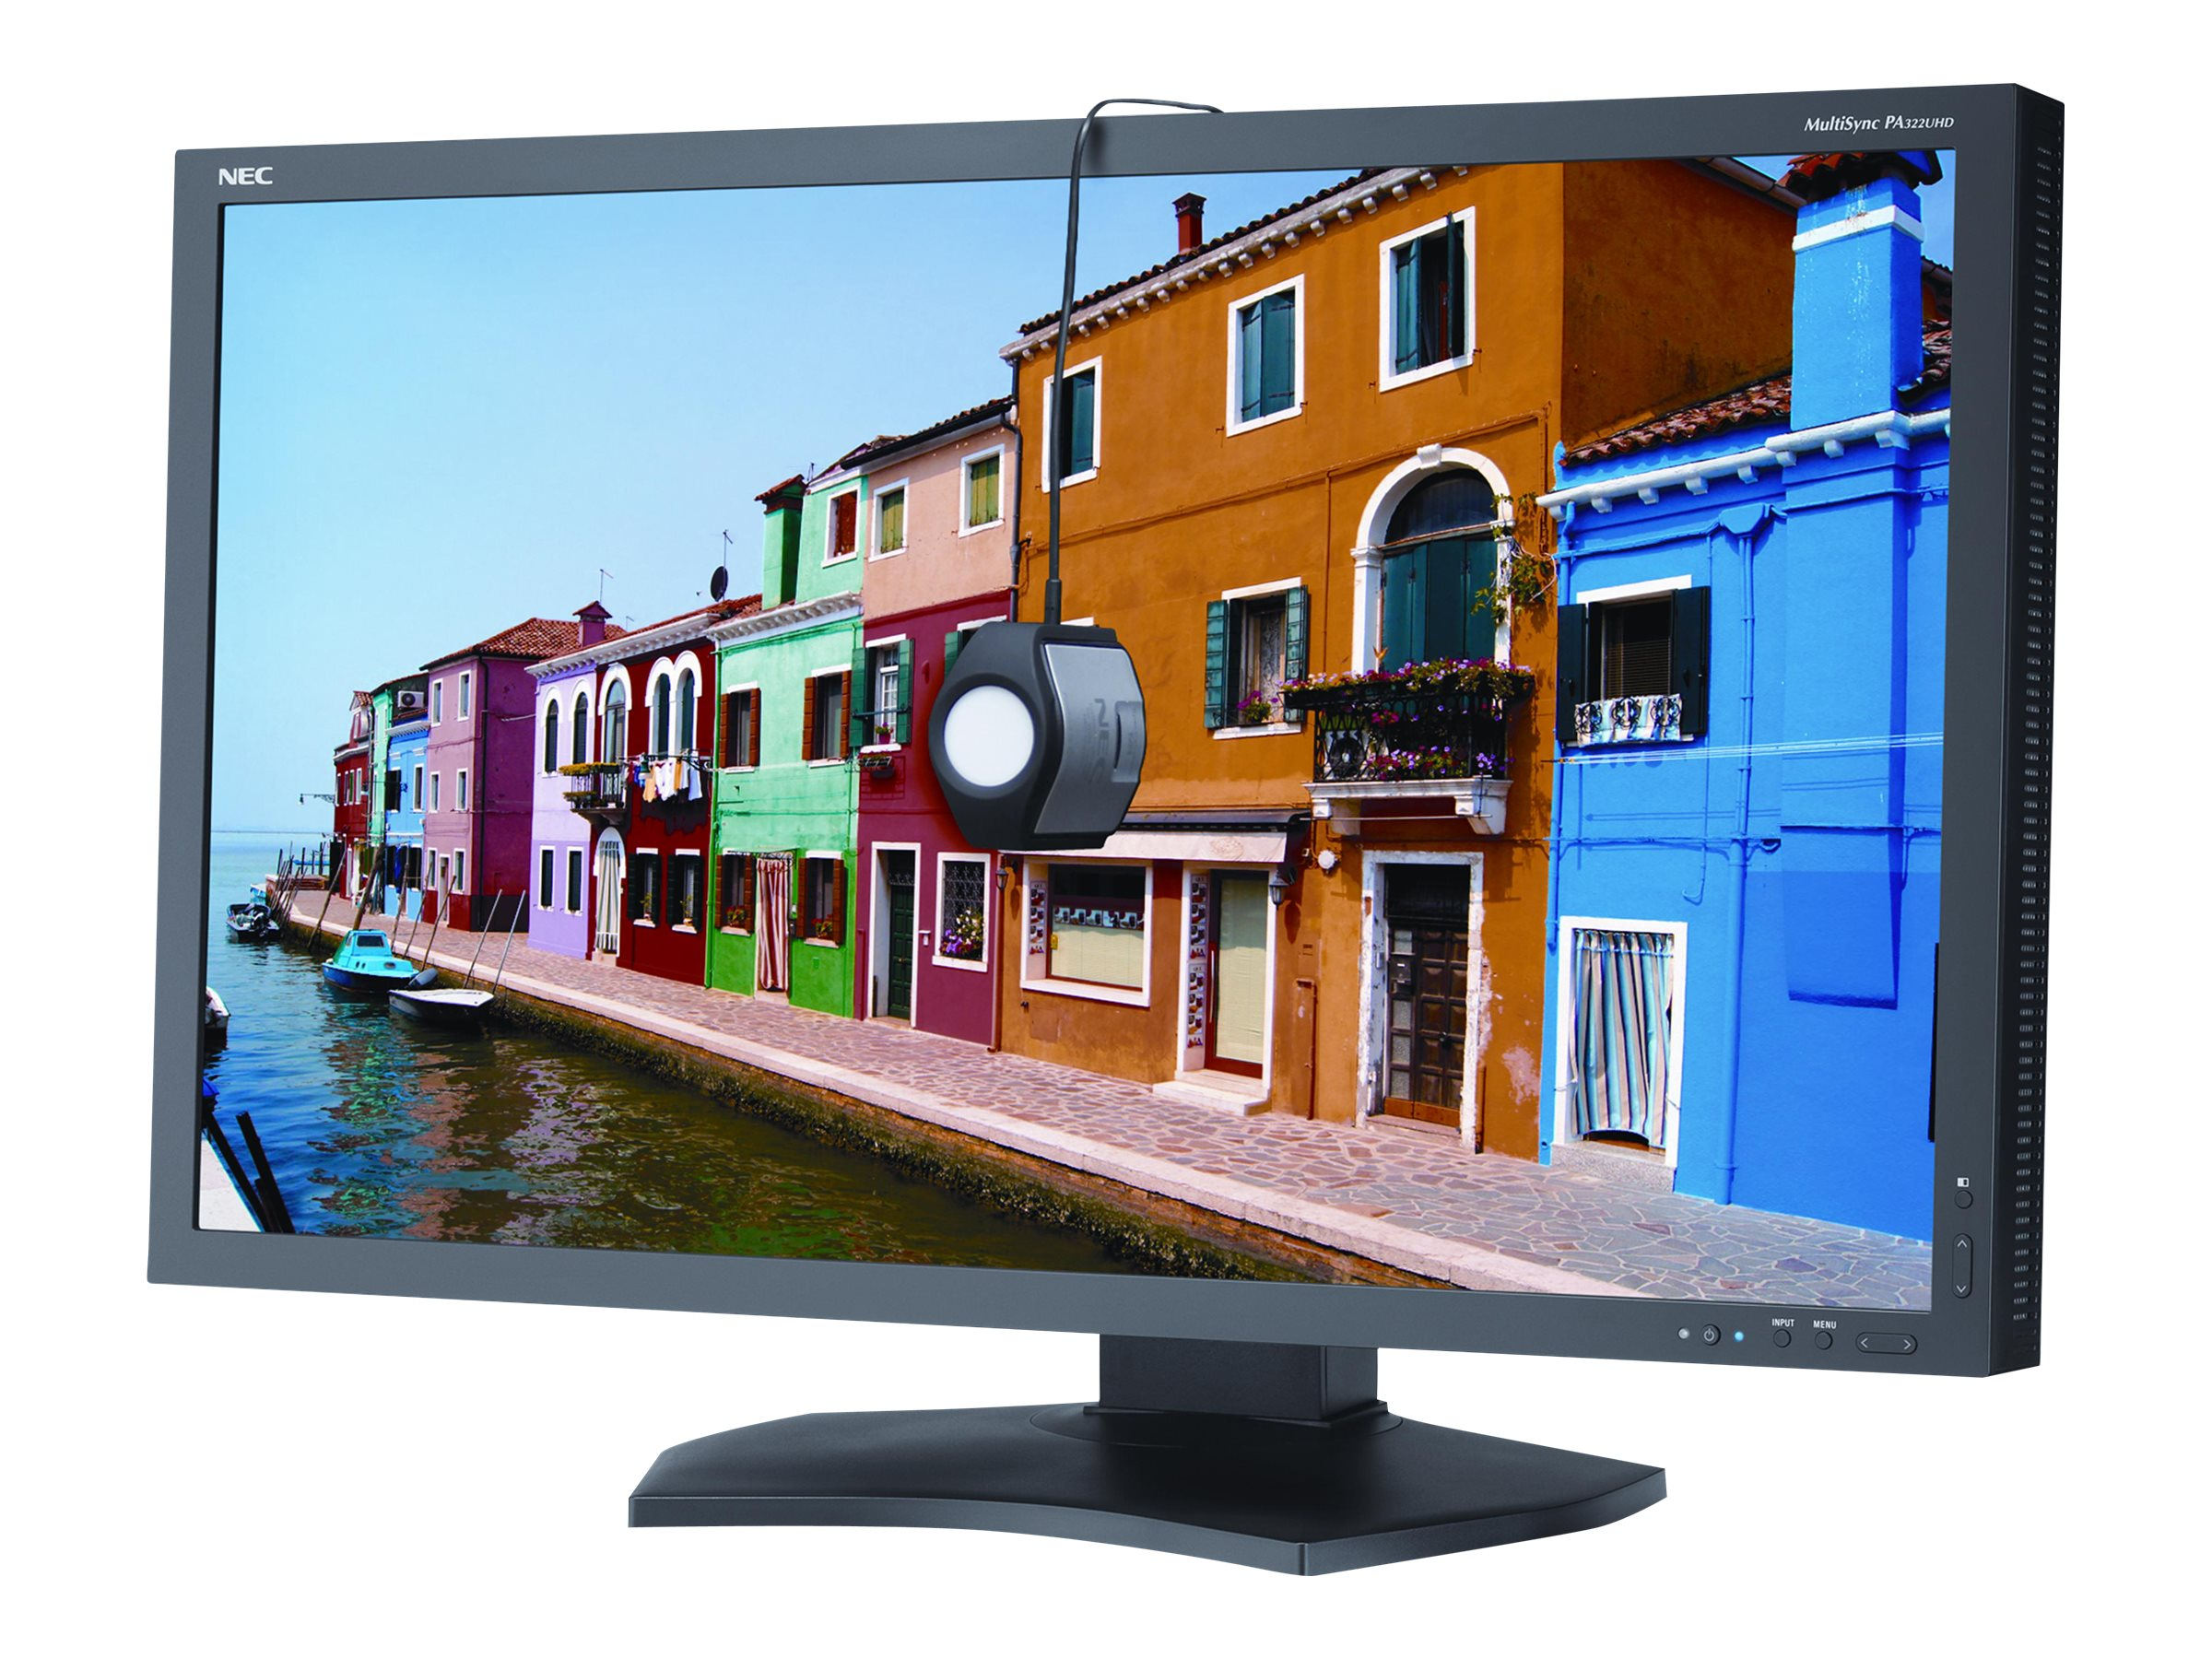 NEC 32 PA322UHD Ultra HD LED-LCD Monitor with SpectraView, PA322UHD-BK-SV